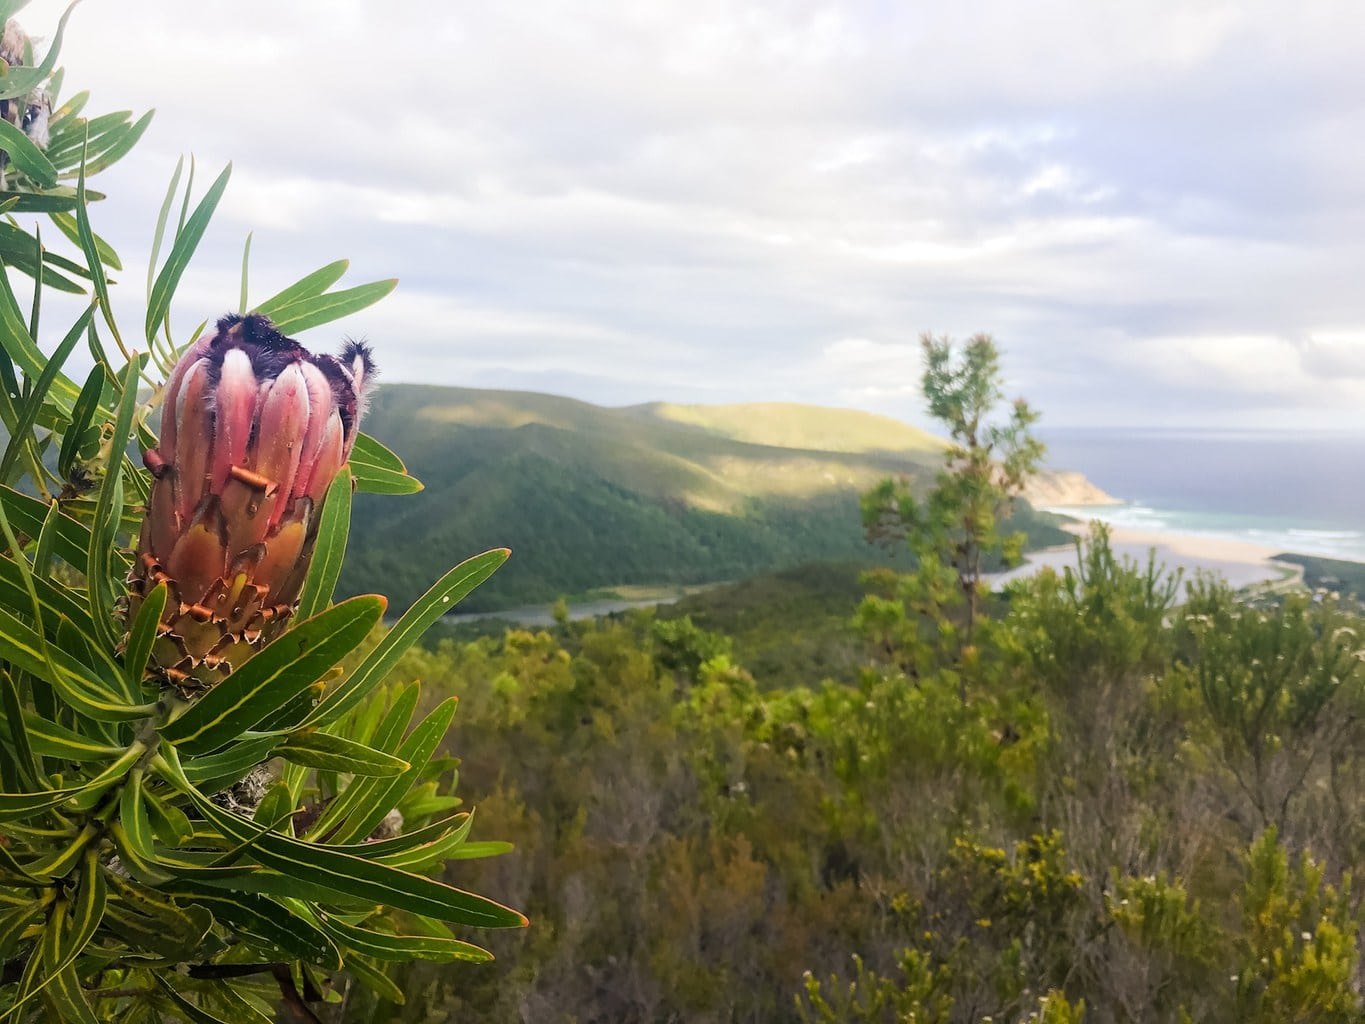 Protea and view from the Kalanderkloof trail